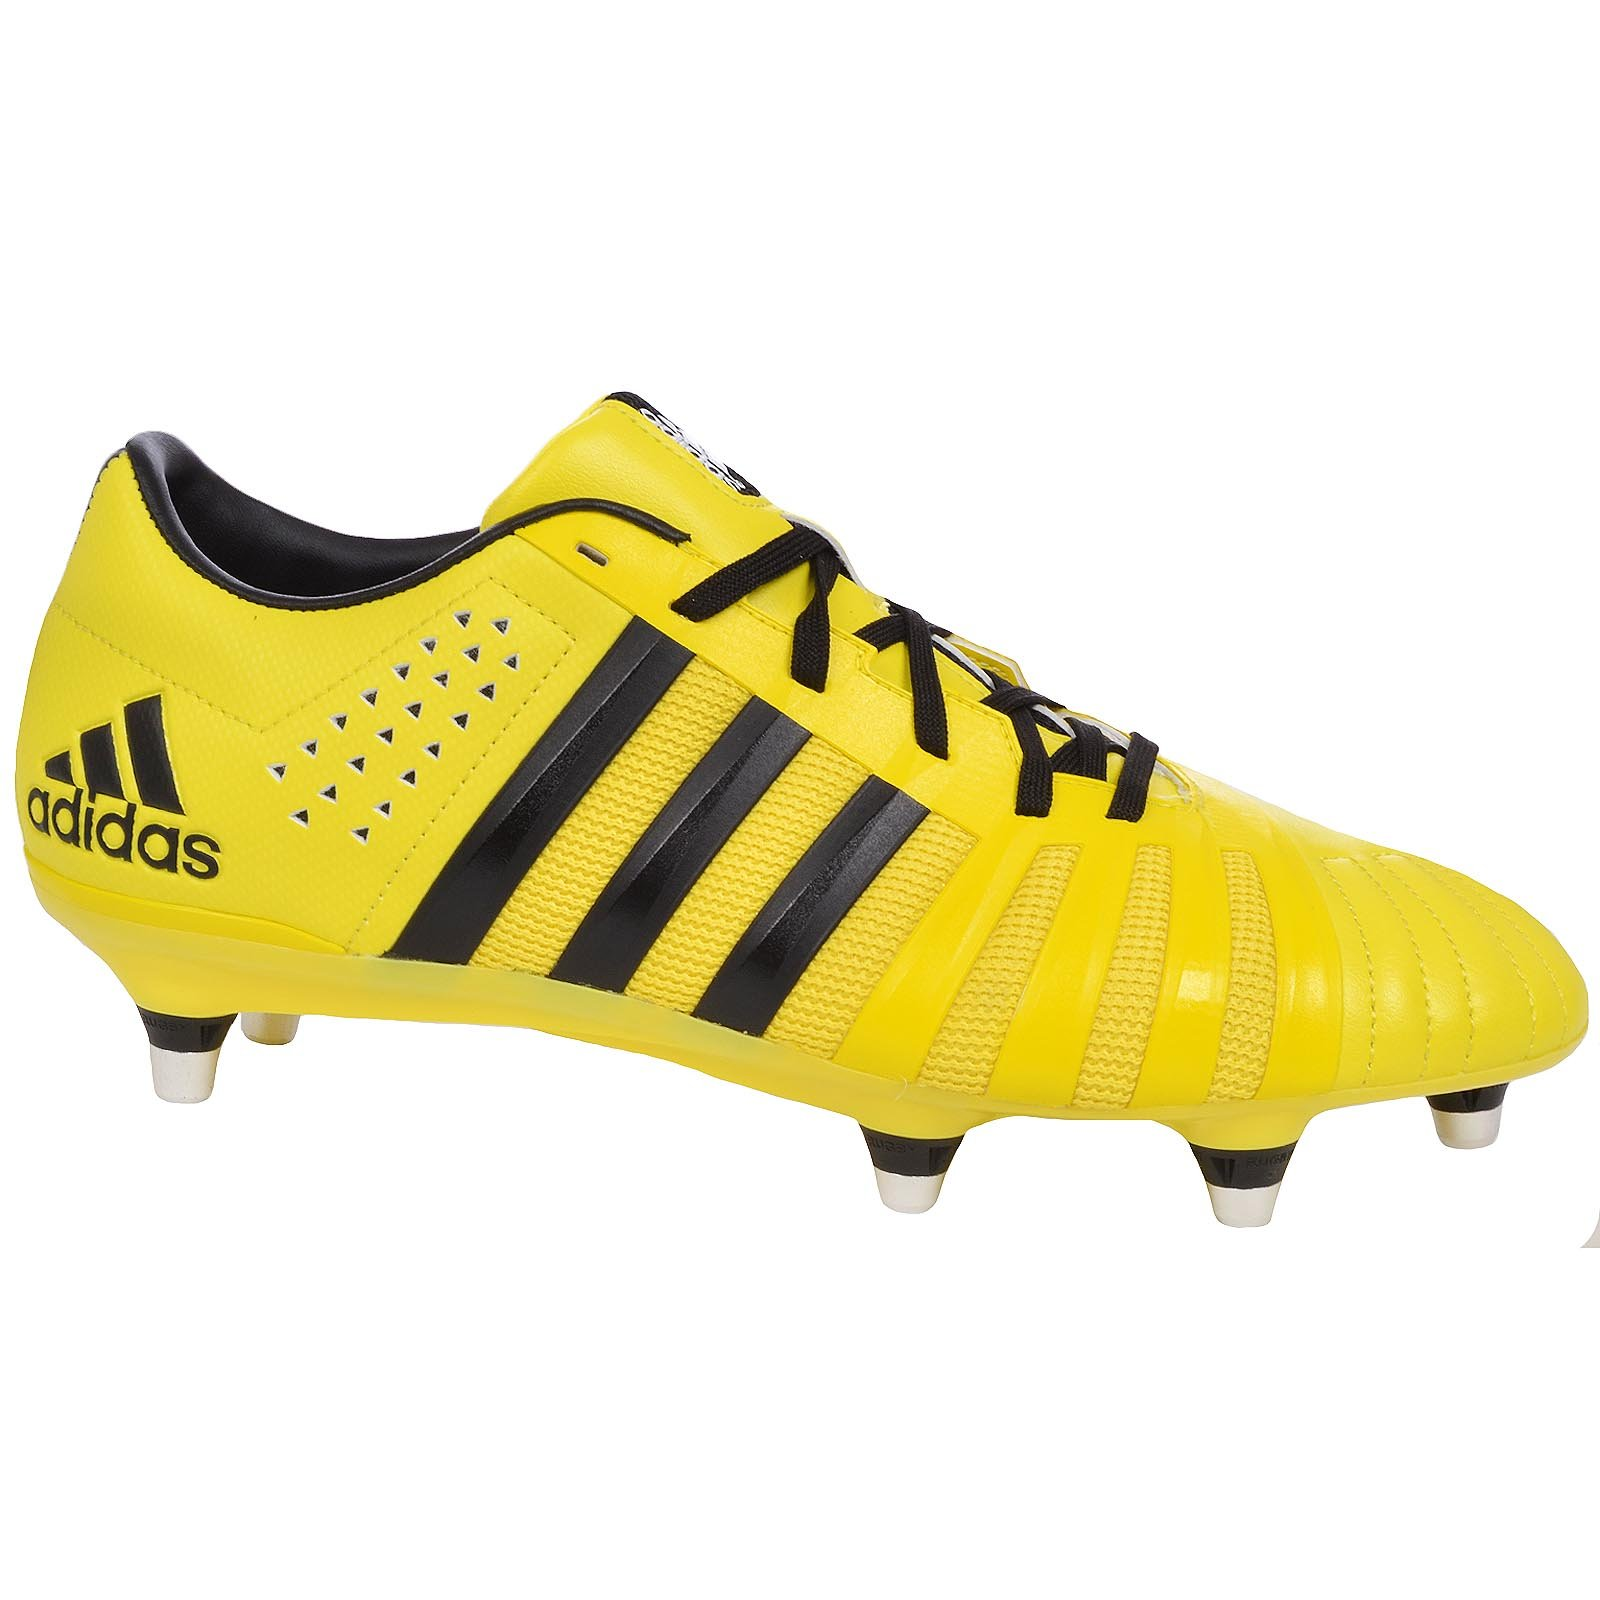 adidas SS16 ff80 Pro 2.0 XTRX SG Rugby Boots - Yellow - Yellow/Black - UK 9.5